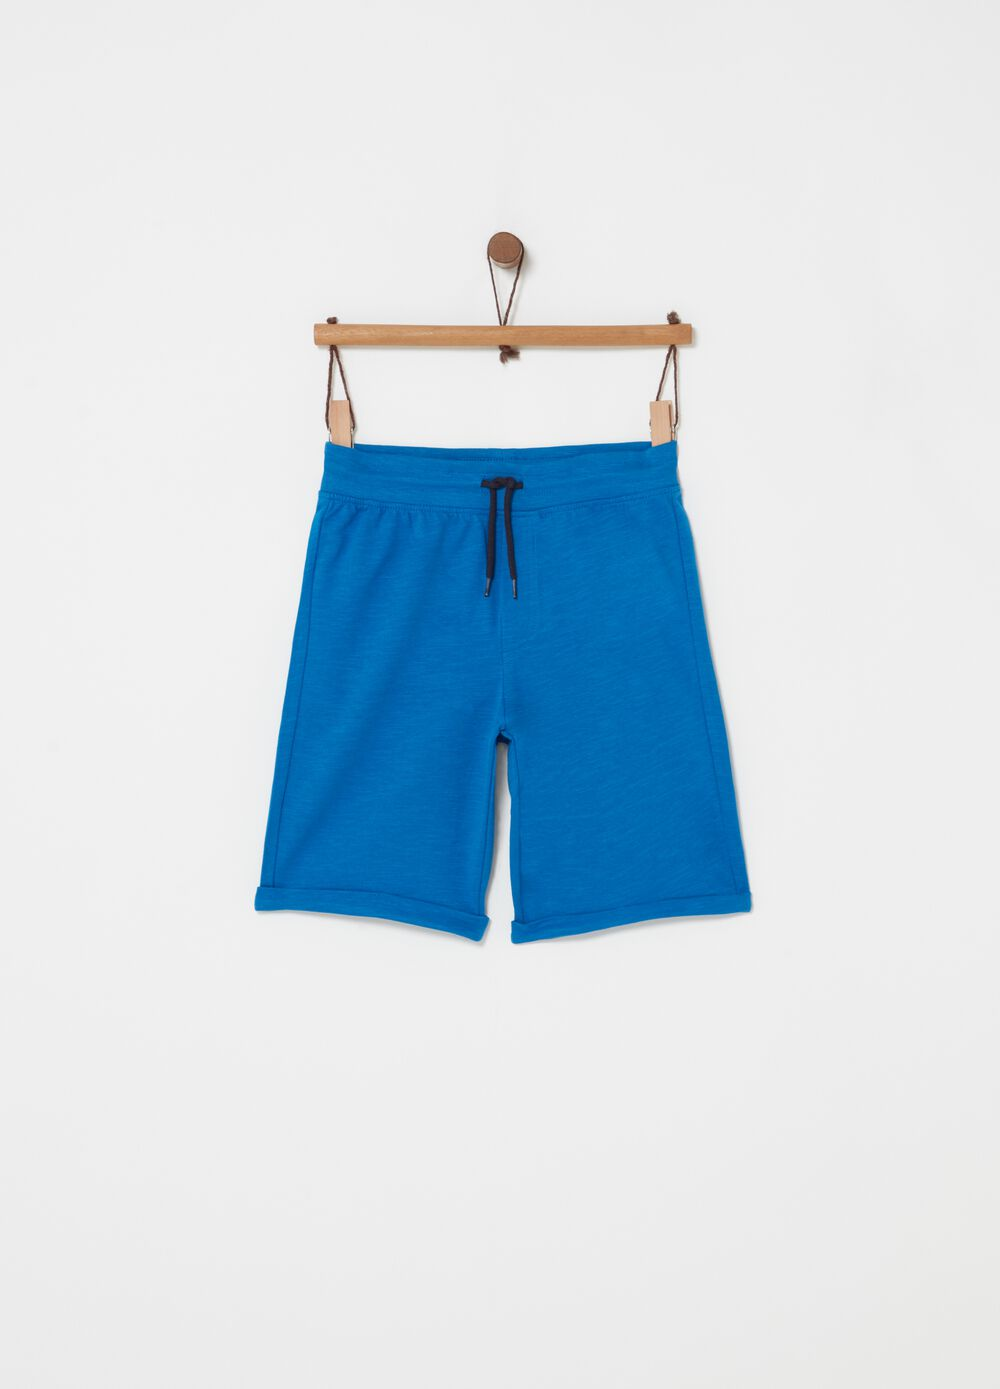 French terry Bermuda shorts with drawstring